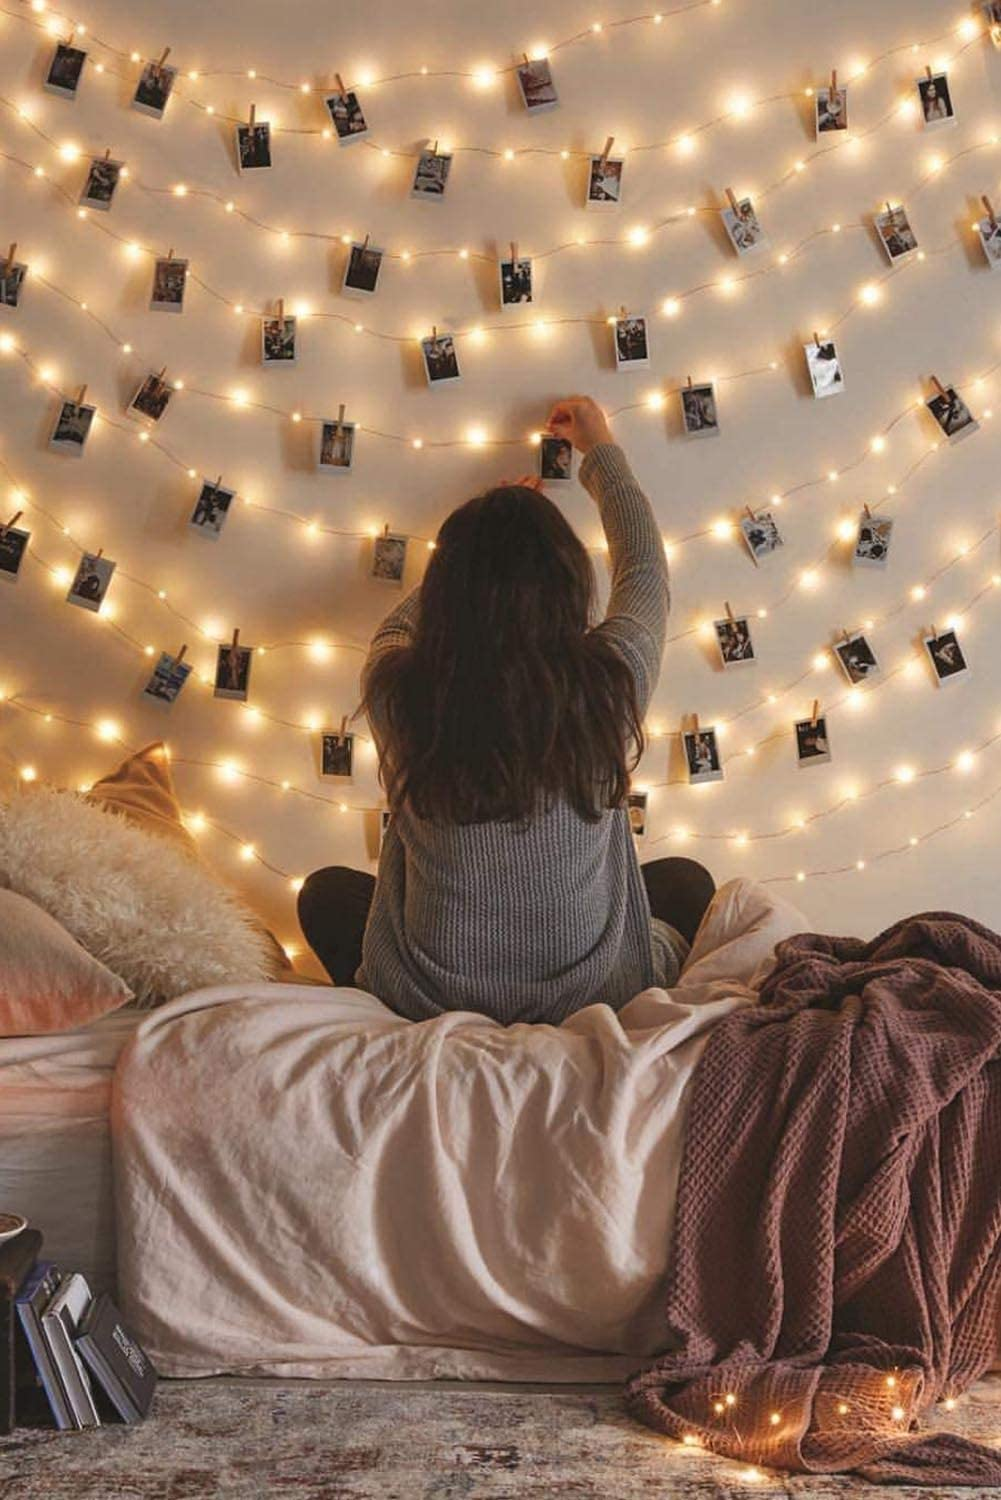 A girl attaching pictures to a photo clip LED string lights.